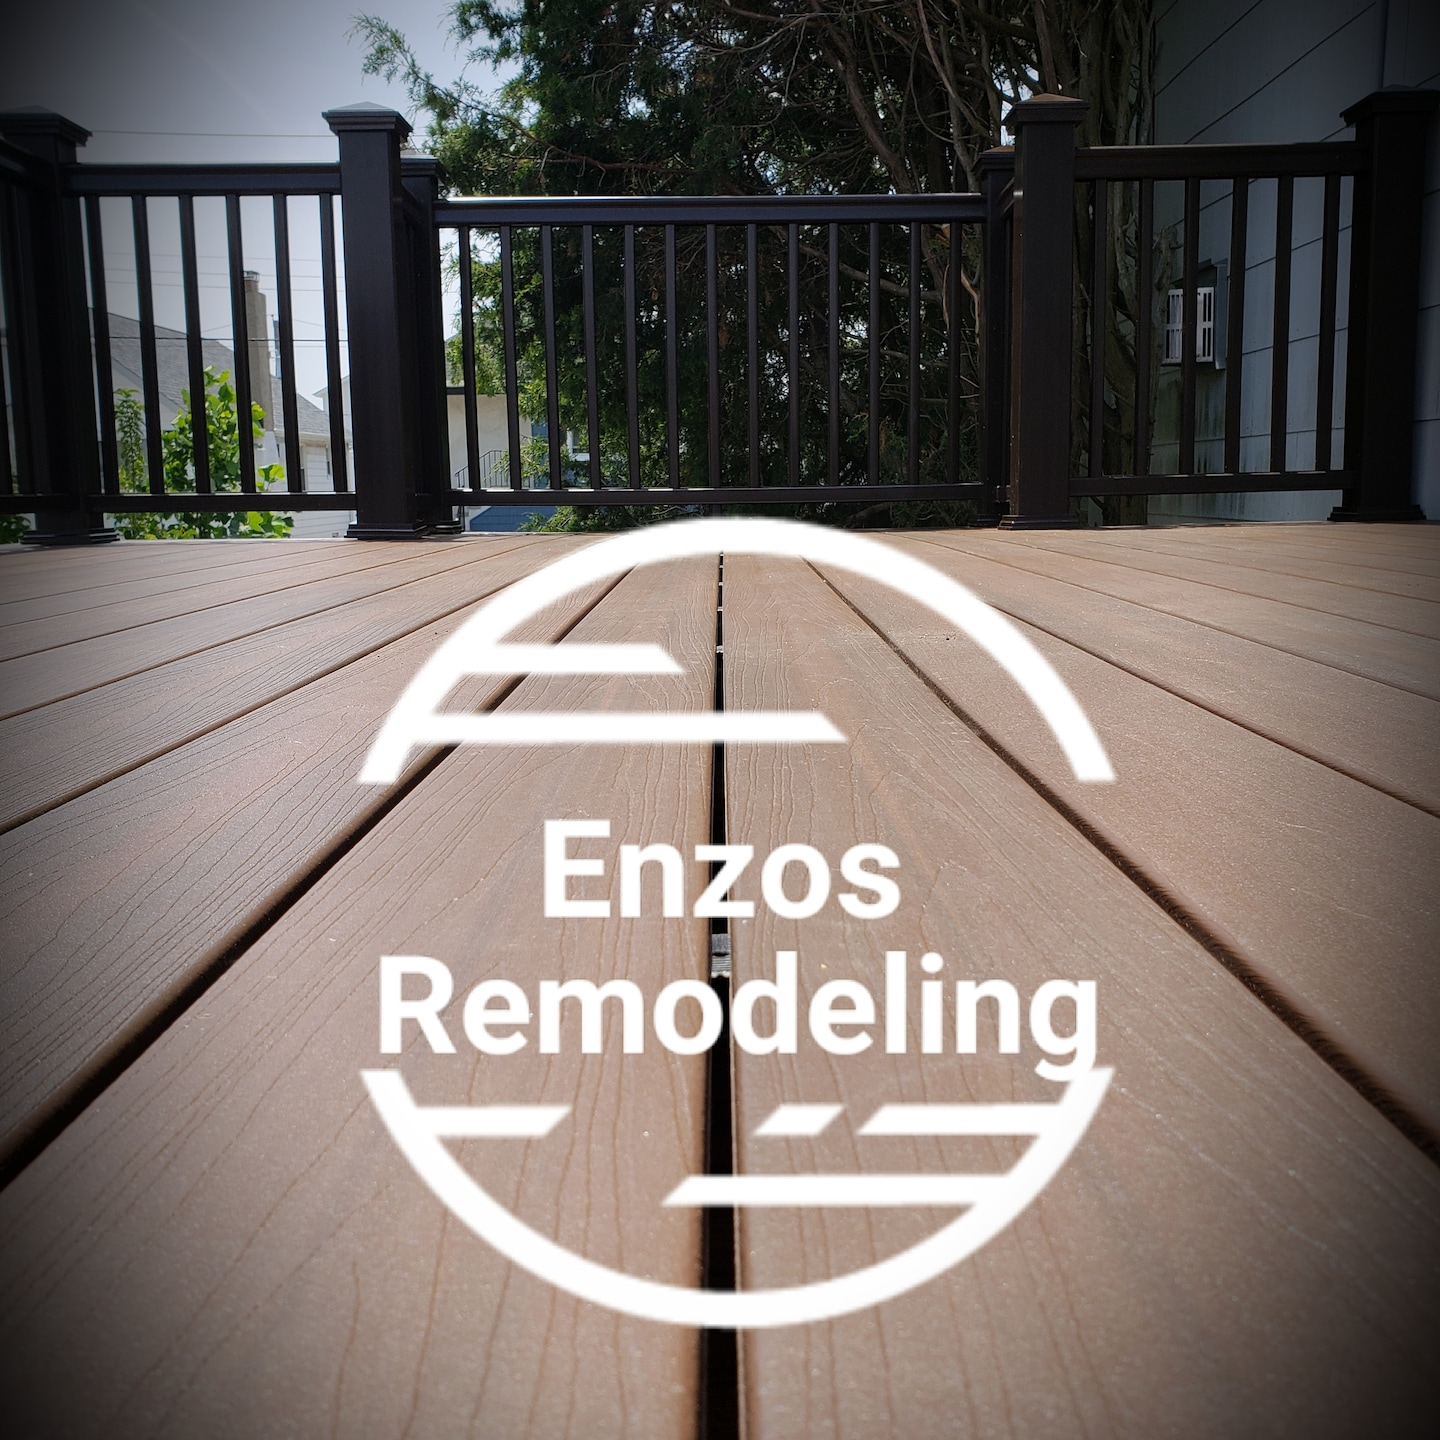 Enzo's Remodeling Inc.